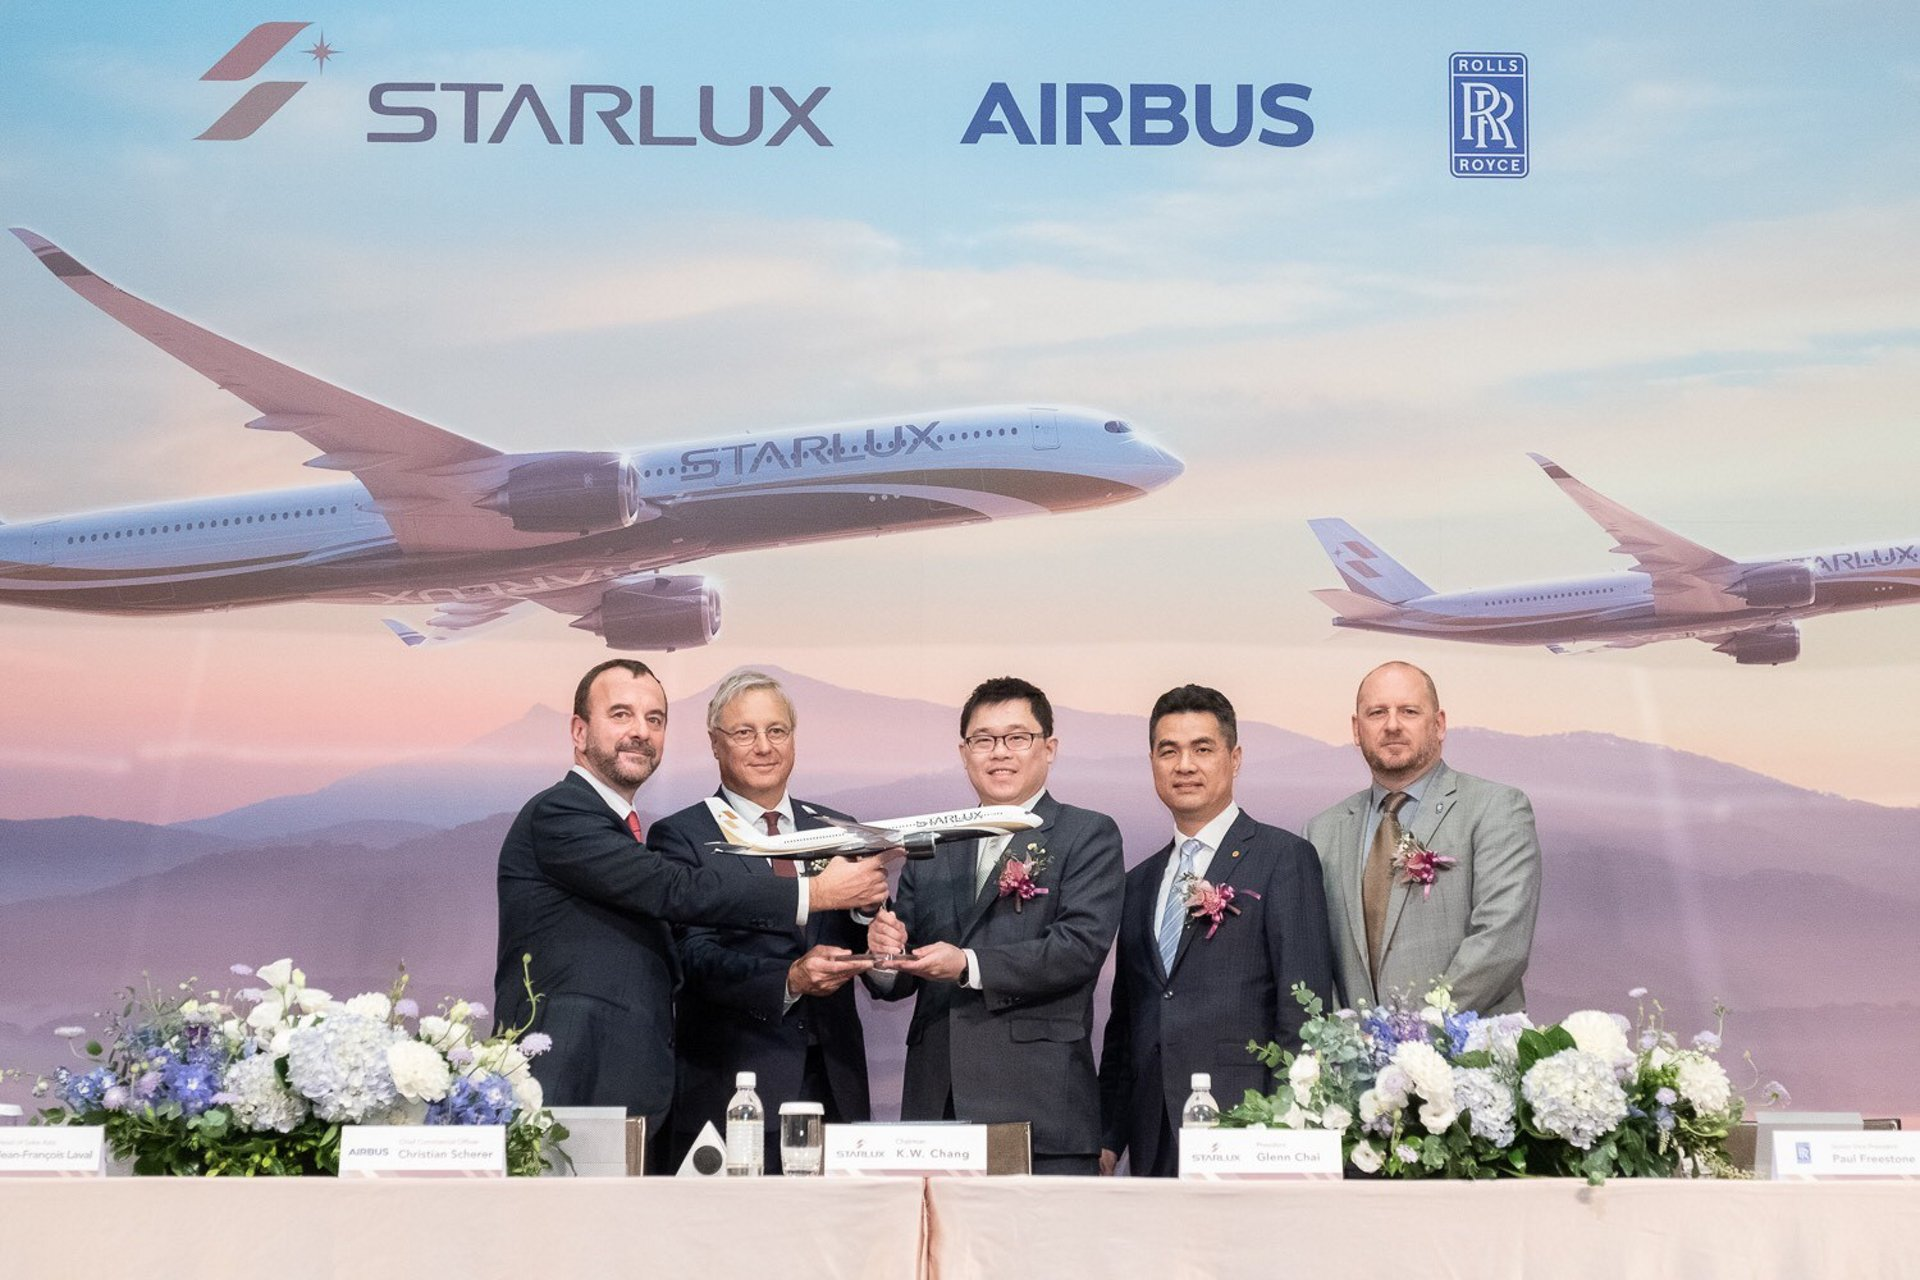 STARLUX Airlines orders 17 A350 XWB aircraft for long-haul services